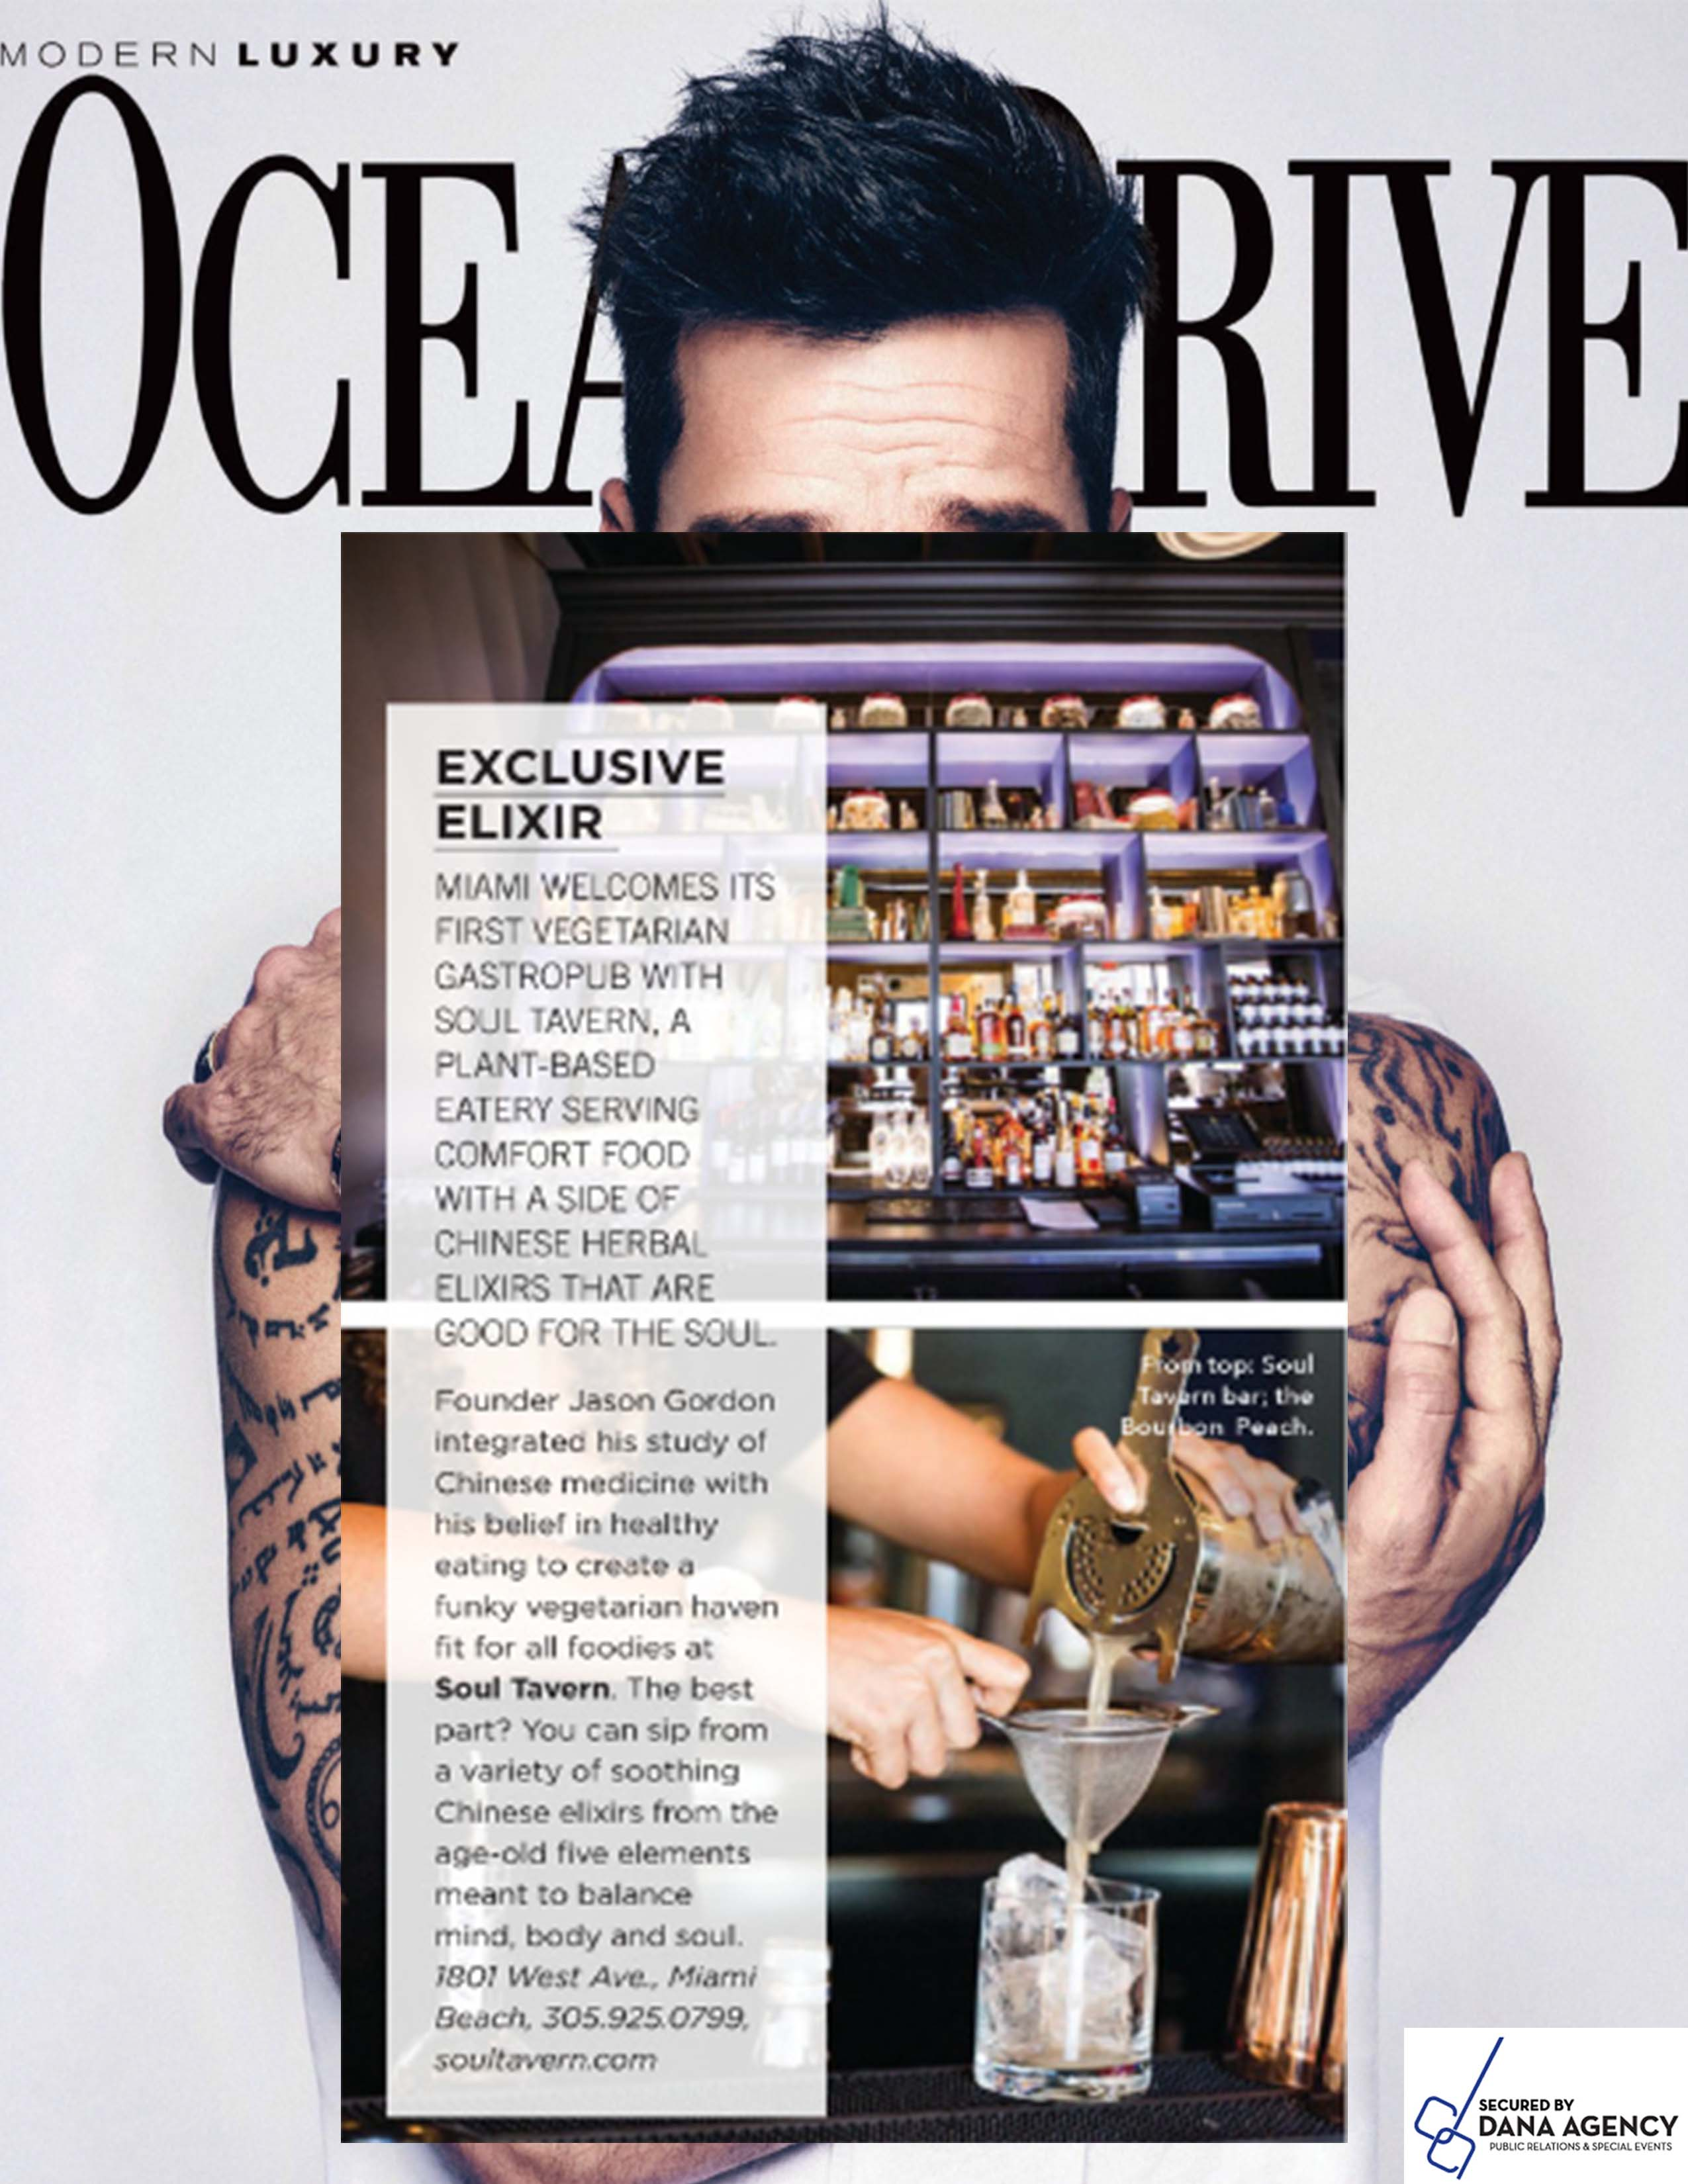 Discover Why the Press Can't Get Enough Soul Tavern | MIami